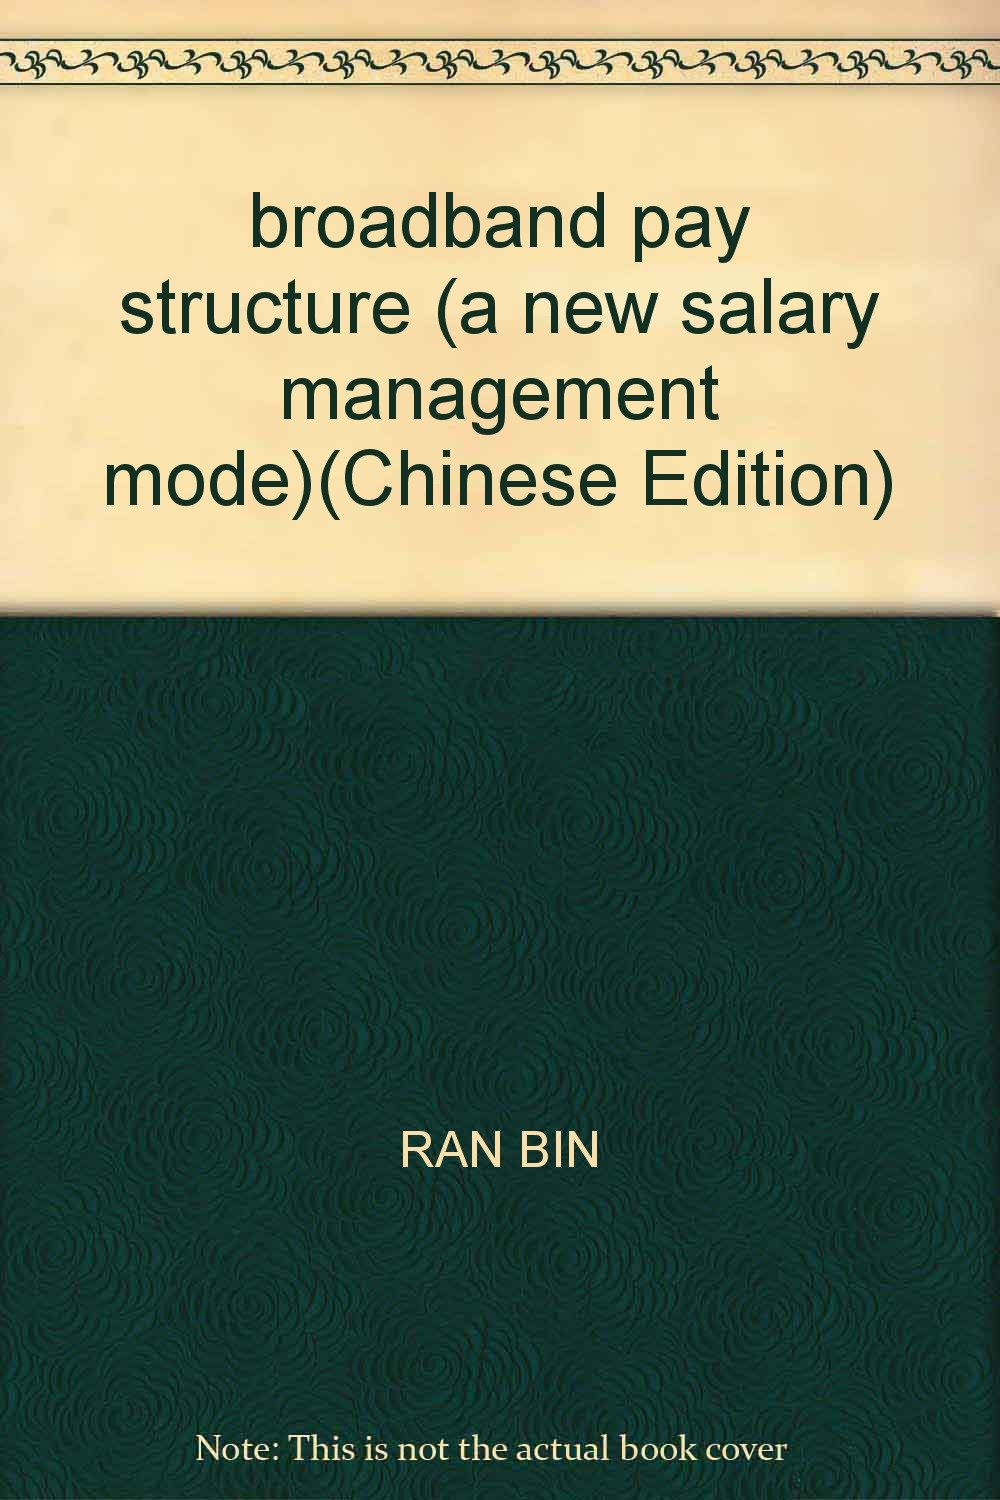 broadband pay structure (a new salary management mode)(Chinese